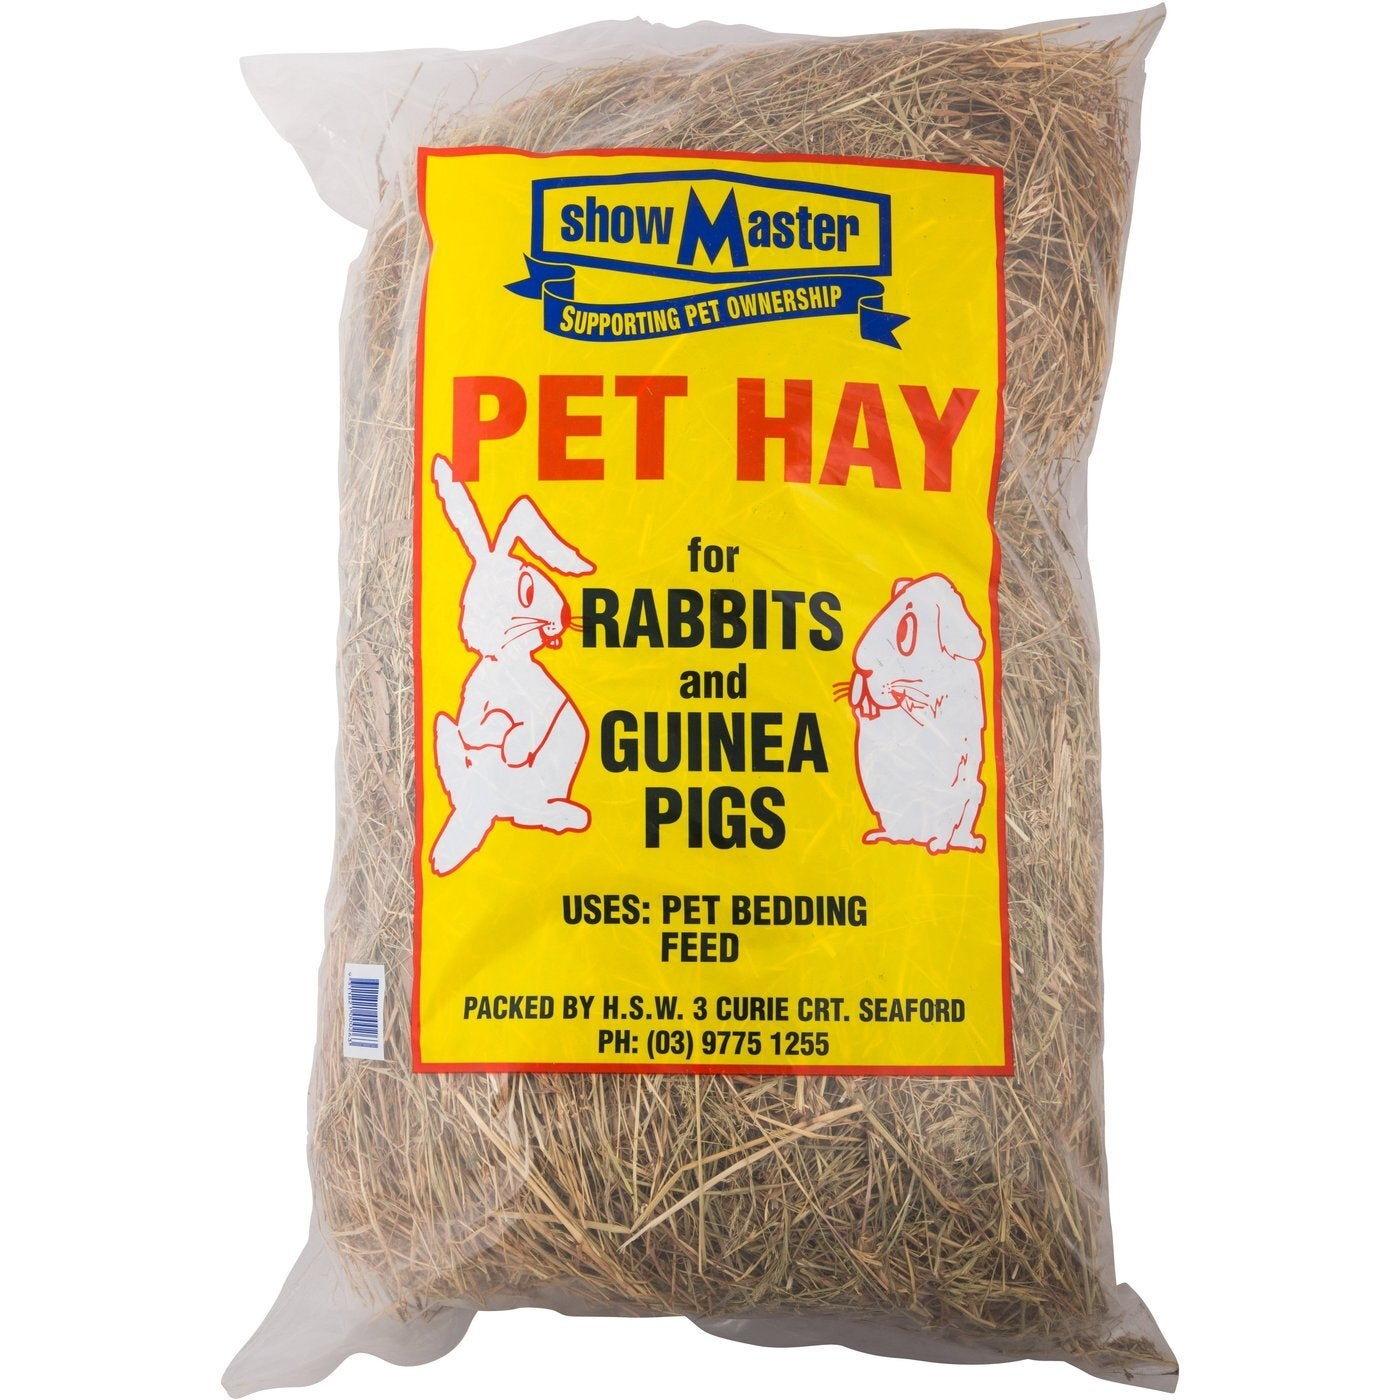 ShowMaster Pet Hay Bedding Feed for Rabbits & Guinea Pigs 2kg